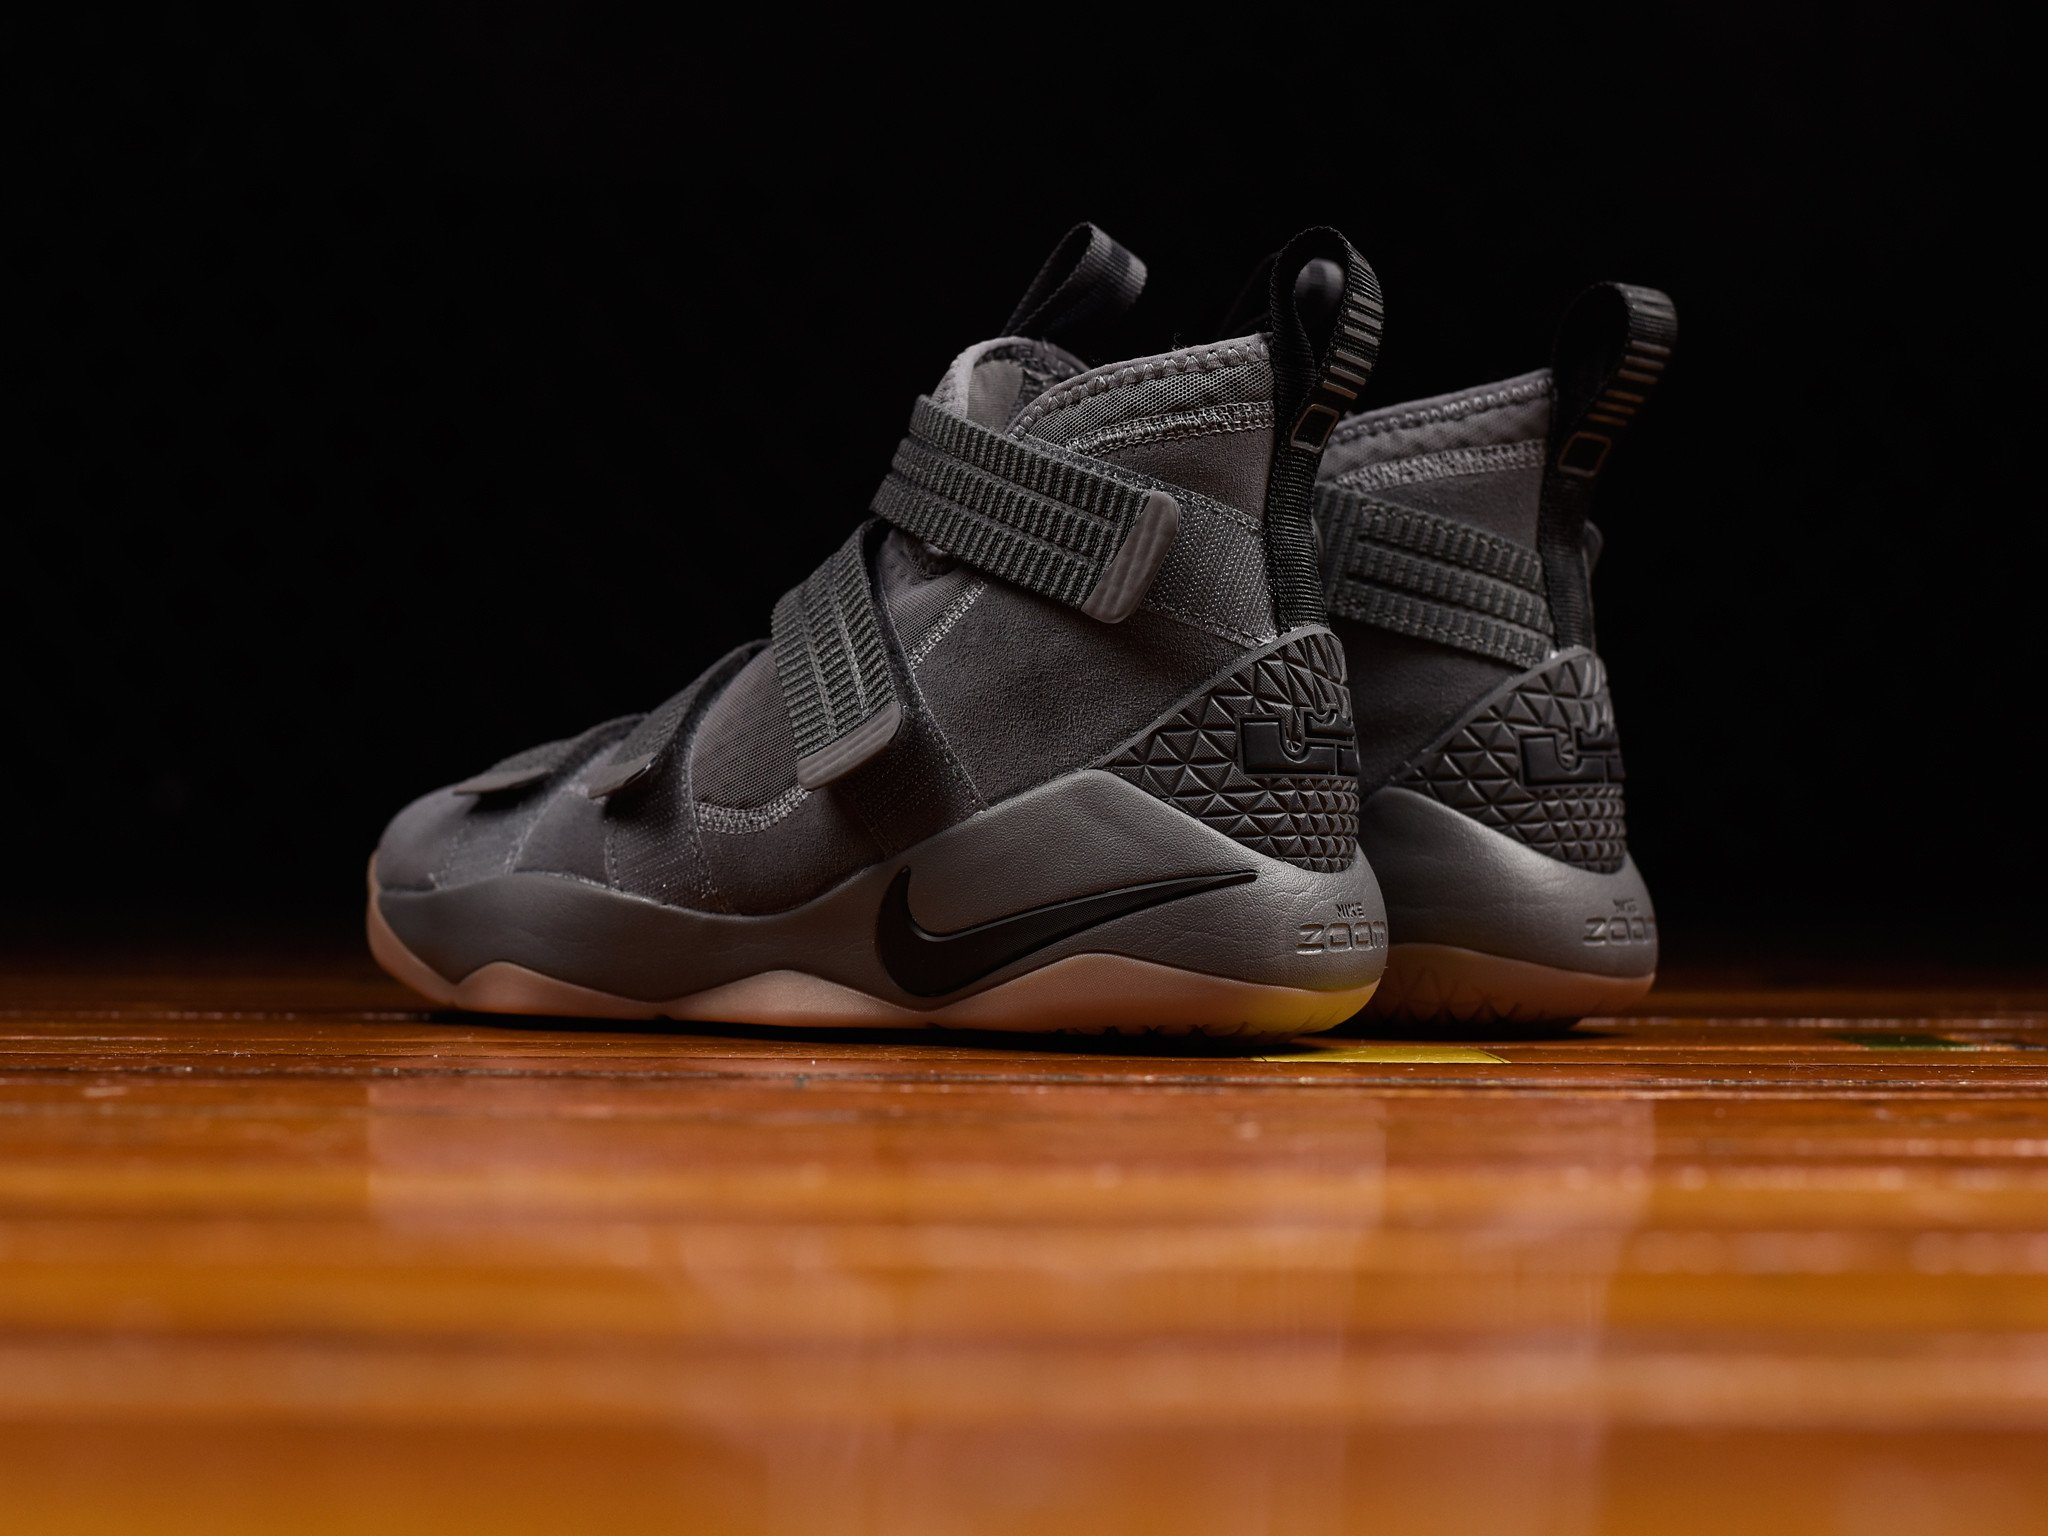 buy popular e0b2a 93bc1 The Nike LeBron Soldier 11 has Dropped in 'Grey Gum ...